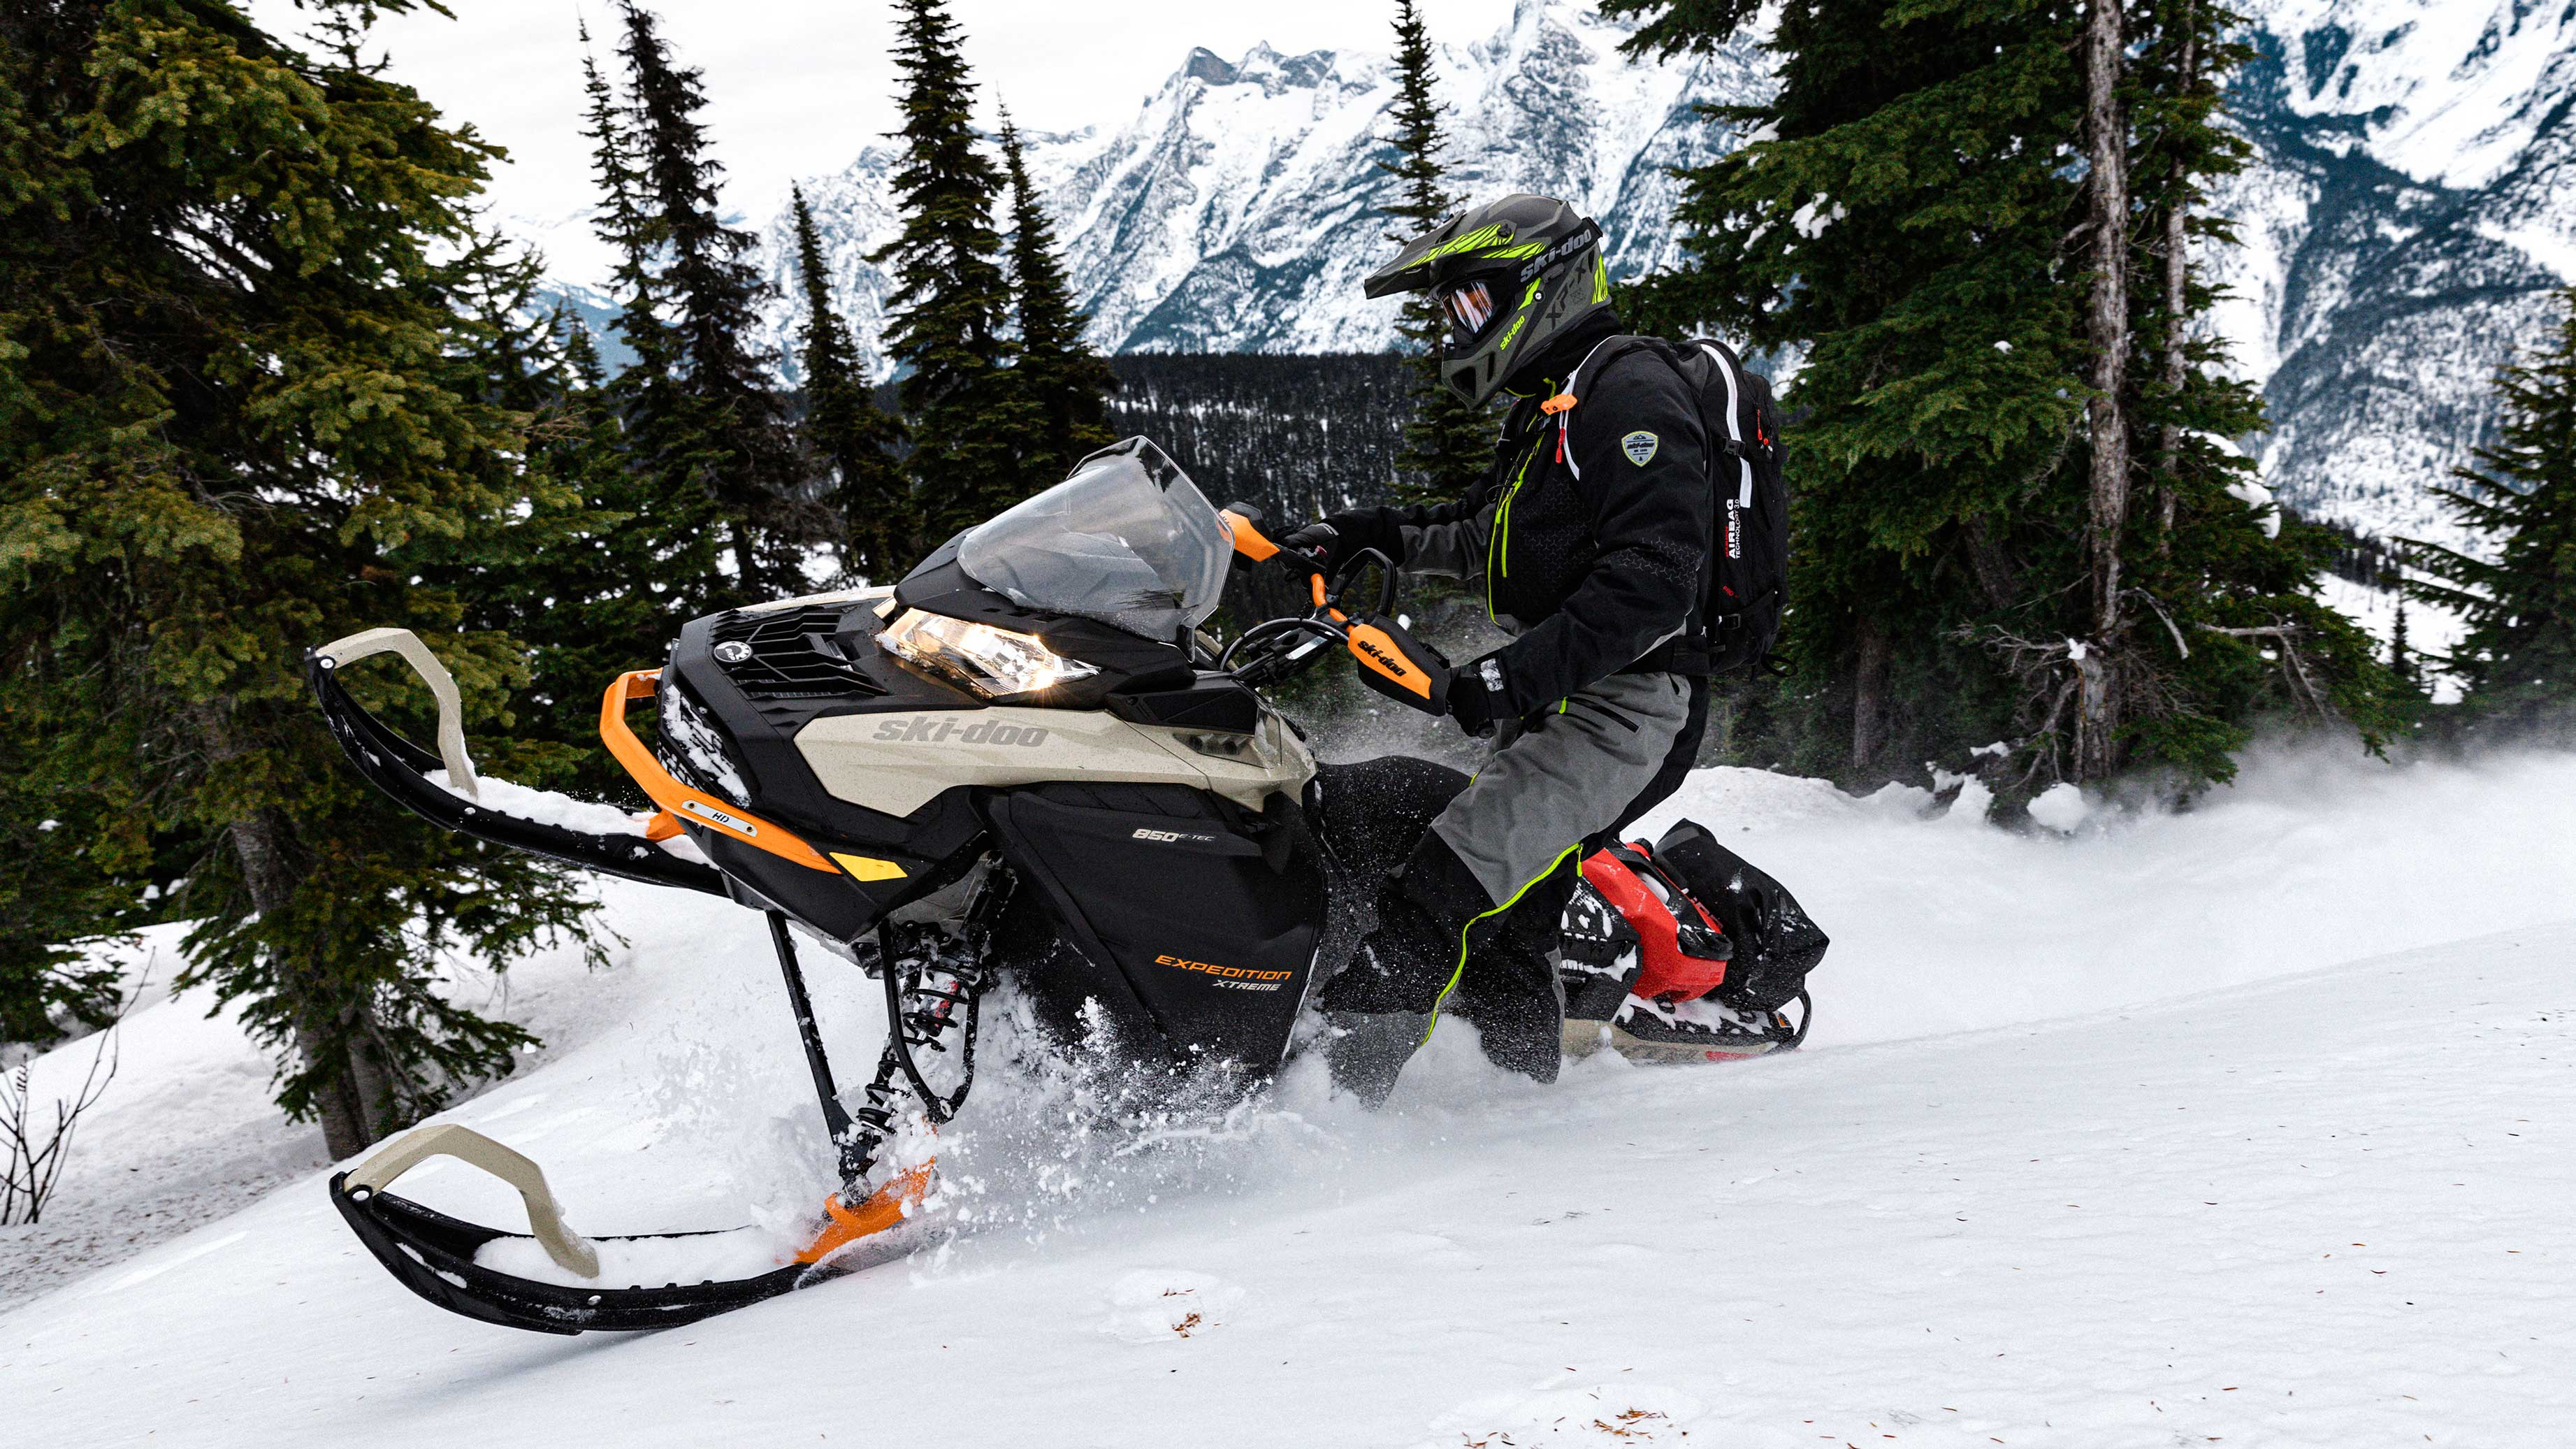 2022 Ski-Doo Expedition carving on a trail